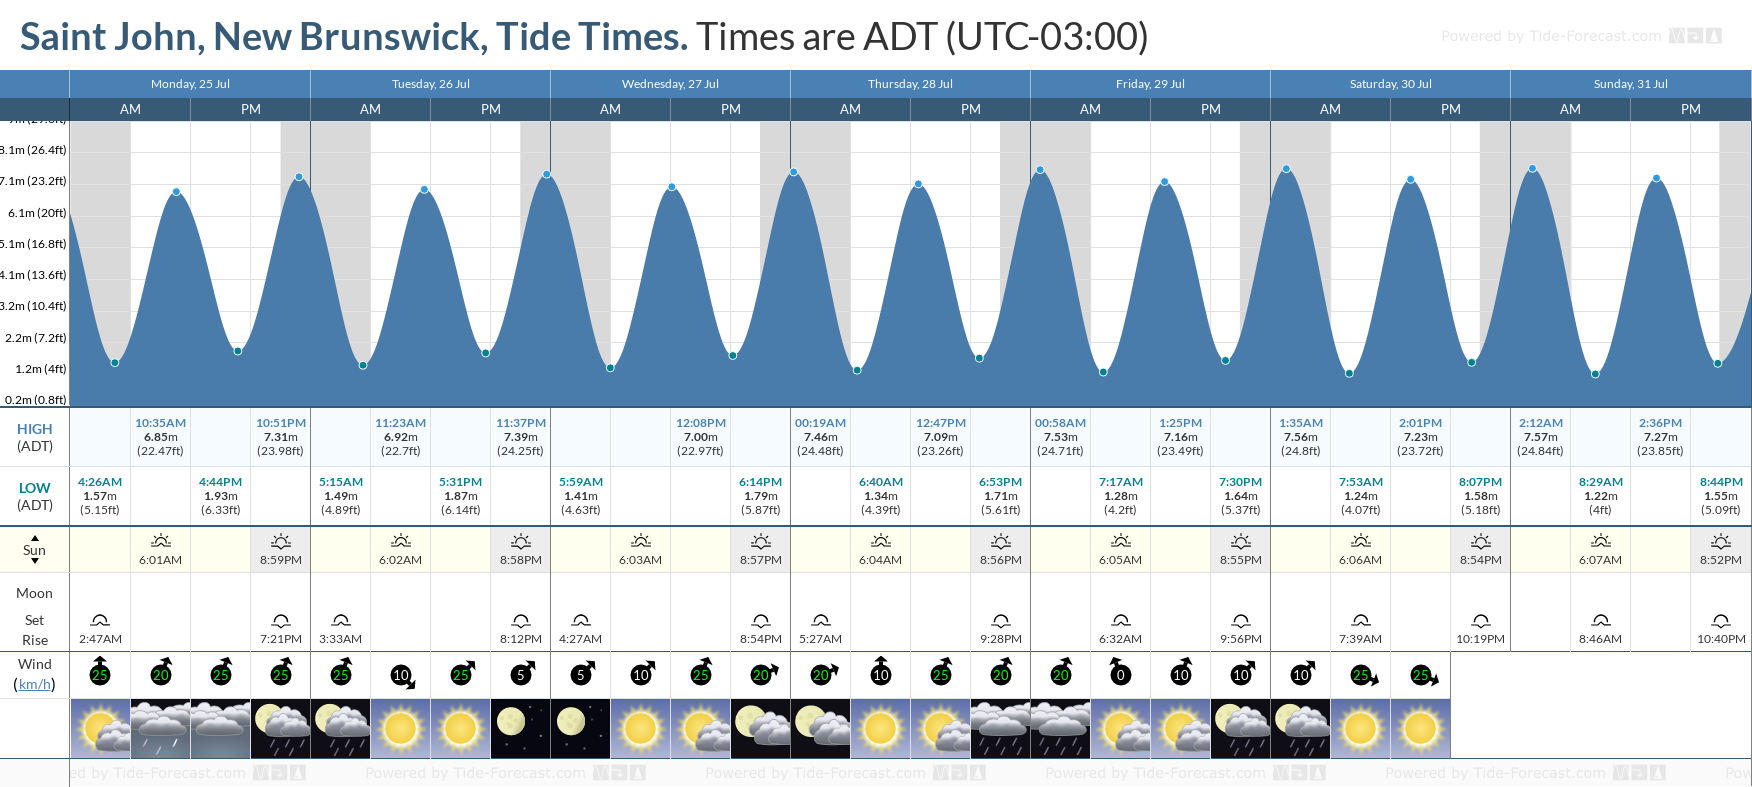 Saint John, New Brunswick Tide Chart including high and low tide tide times for the next 7 days